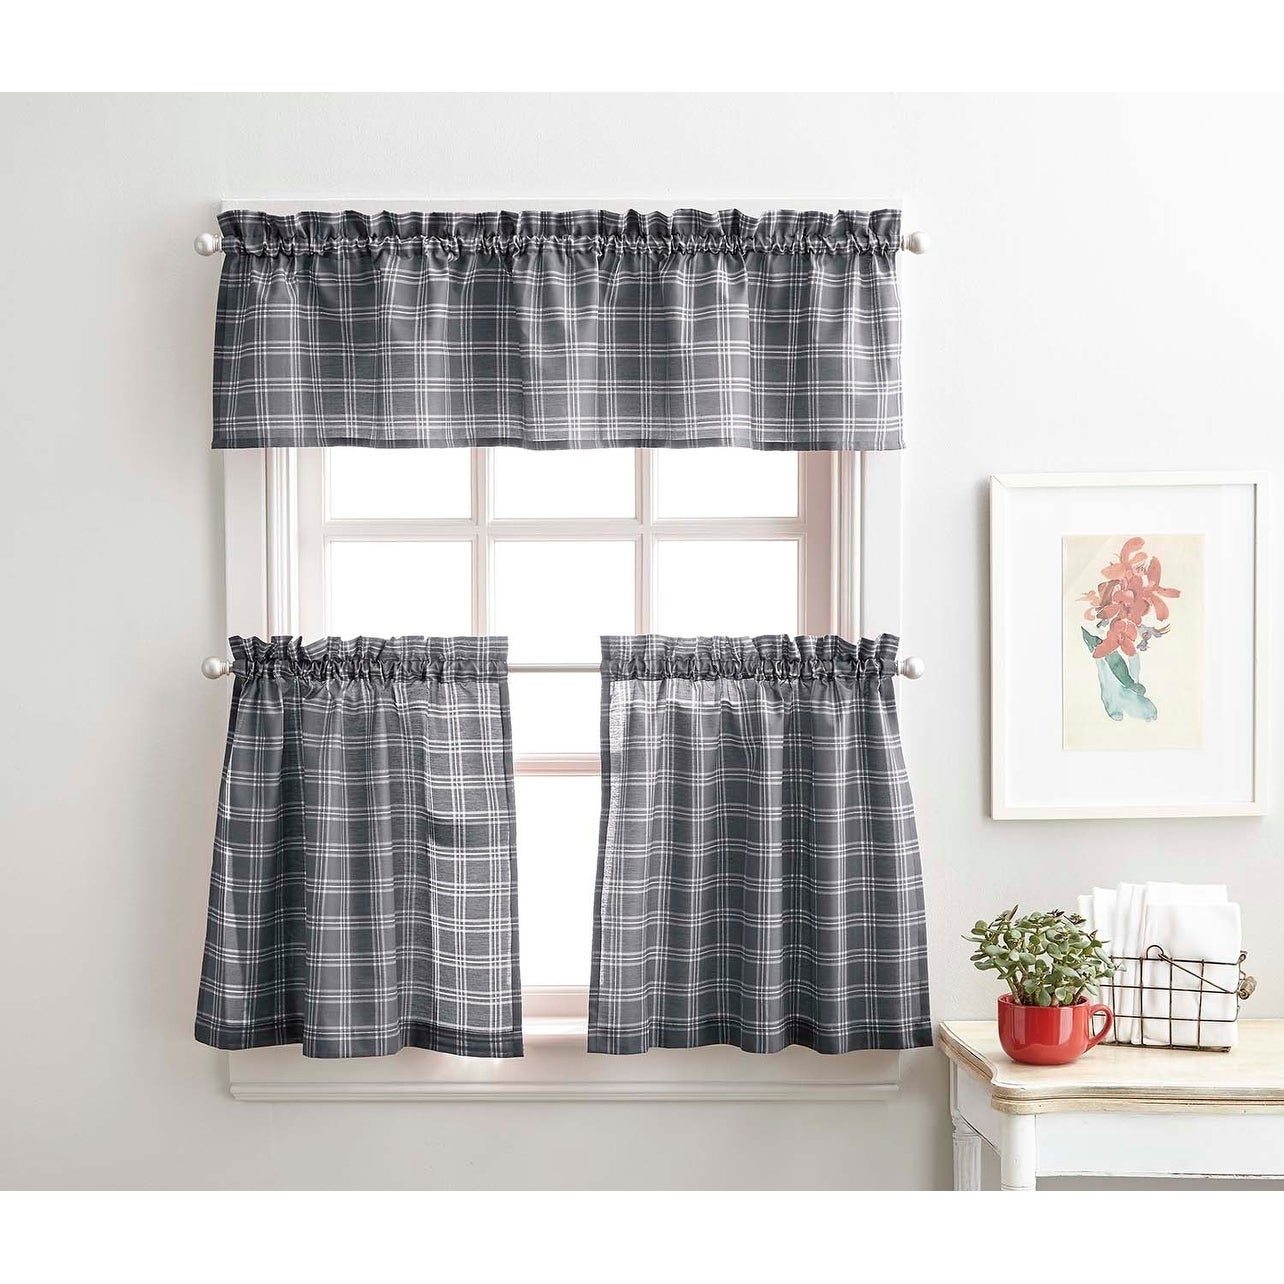 "Lodge Plaid 3 Piece Kitchen Curtain Tier And Valance Set – 36"" 3Pc Set Regarding Cottage Ivy Curtain Tiers (View 15 of 20)"